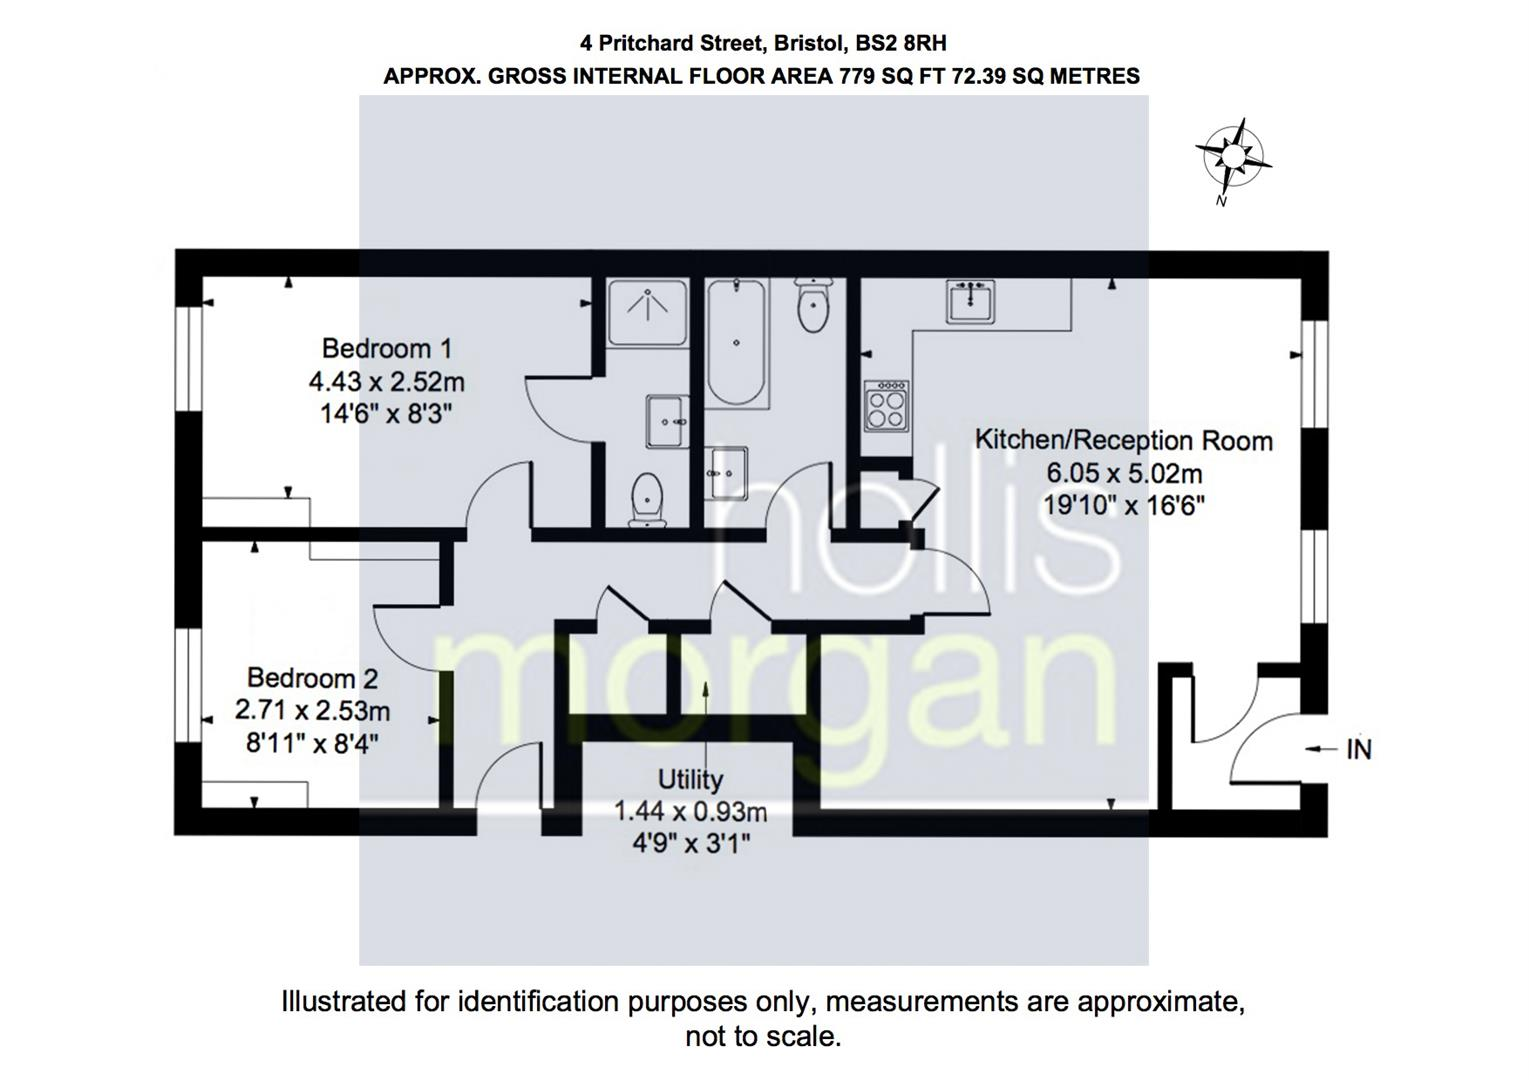 Floorplans For Pritchard Street, City Centre